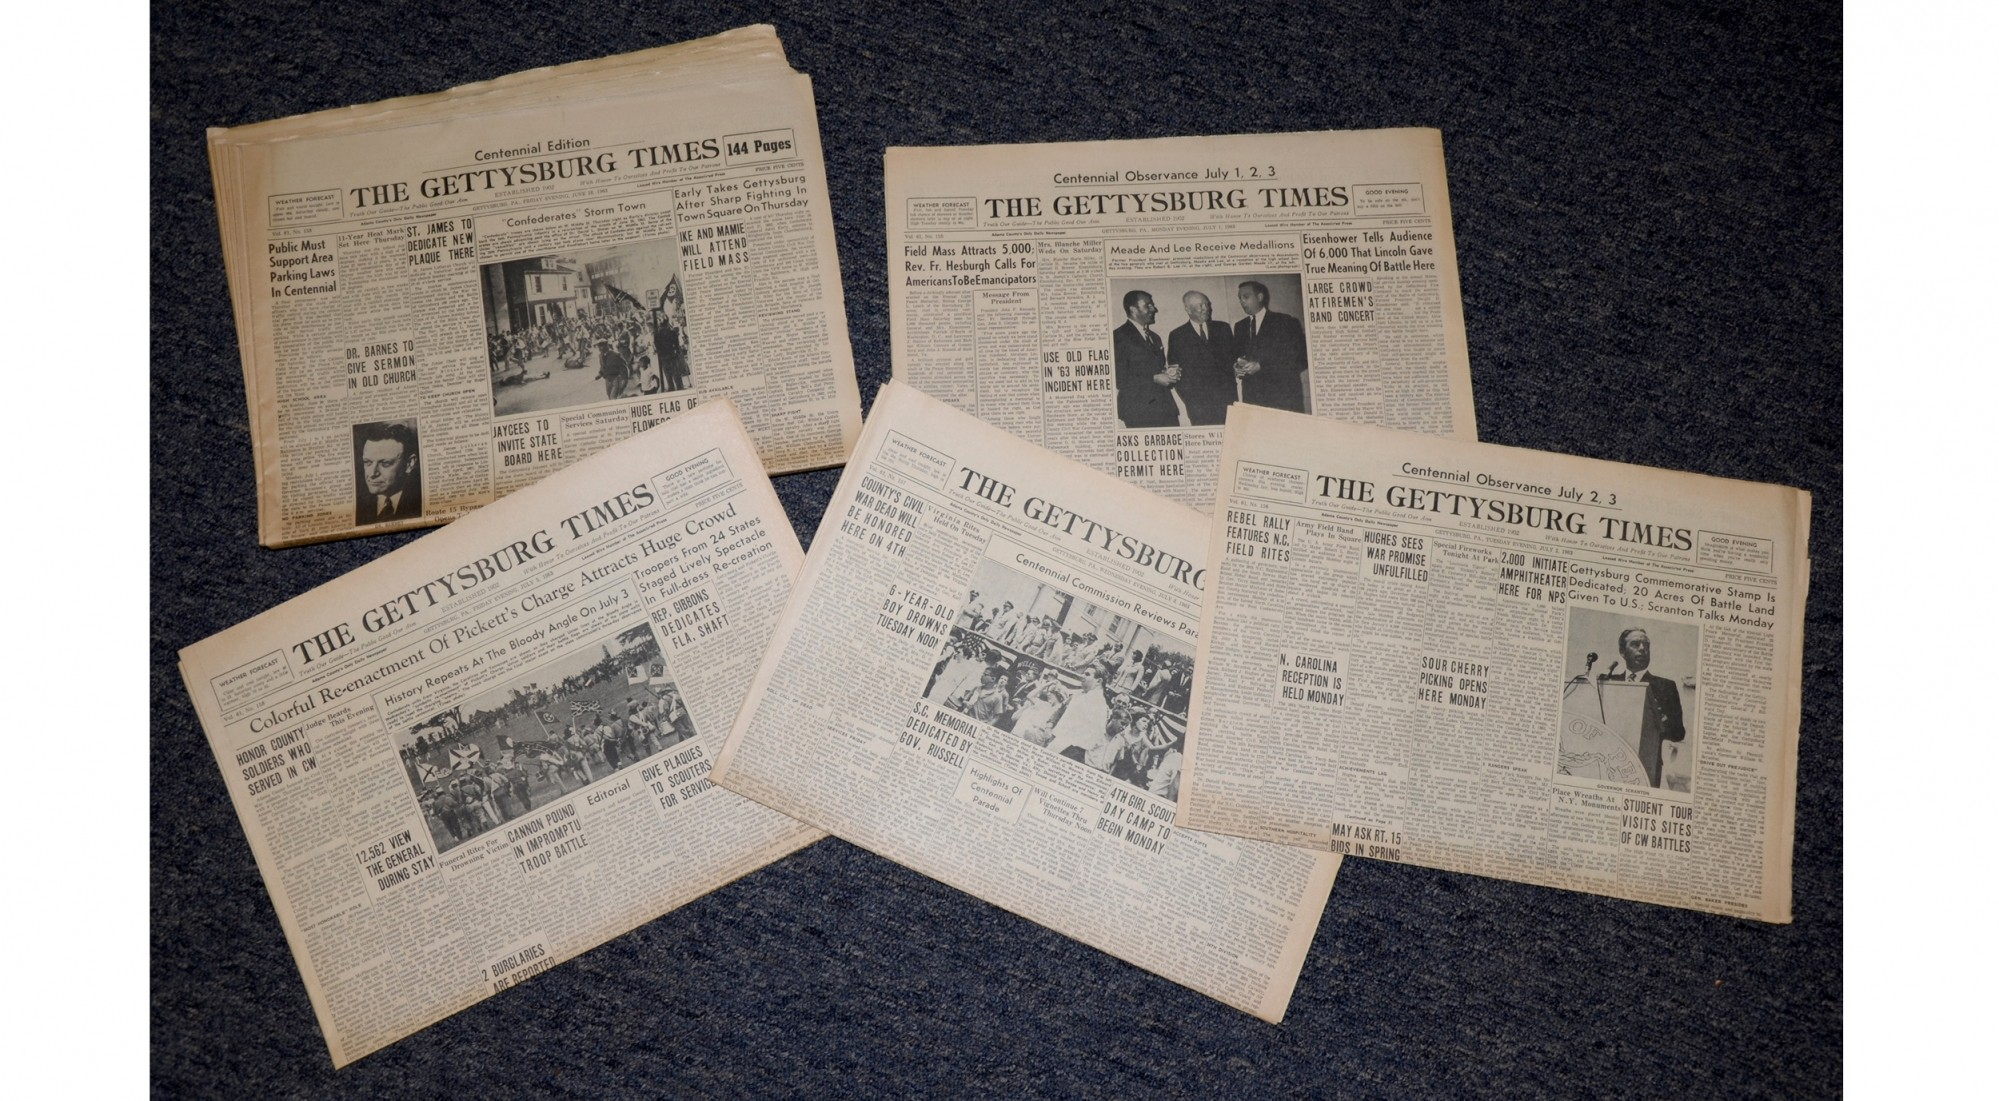 FIVE COPIES OF THE GETTYSBURG TIMES, DATED JUNE 28, JULY 1, 2, 3, & 5, 1963